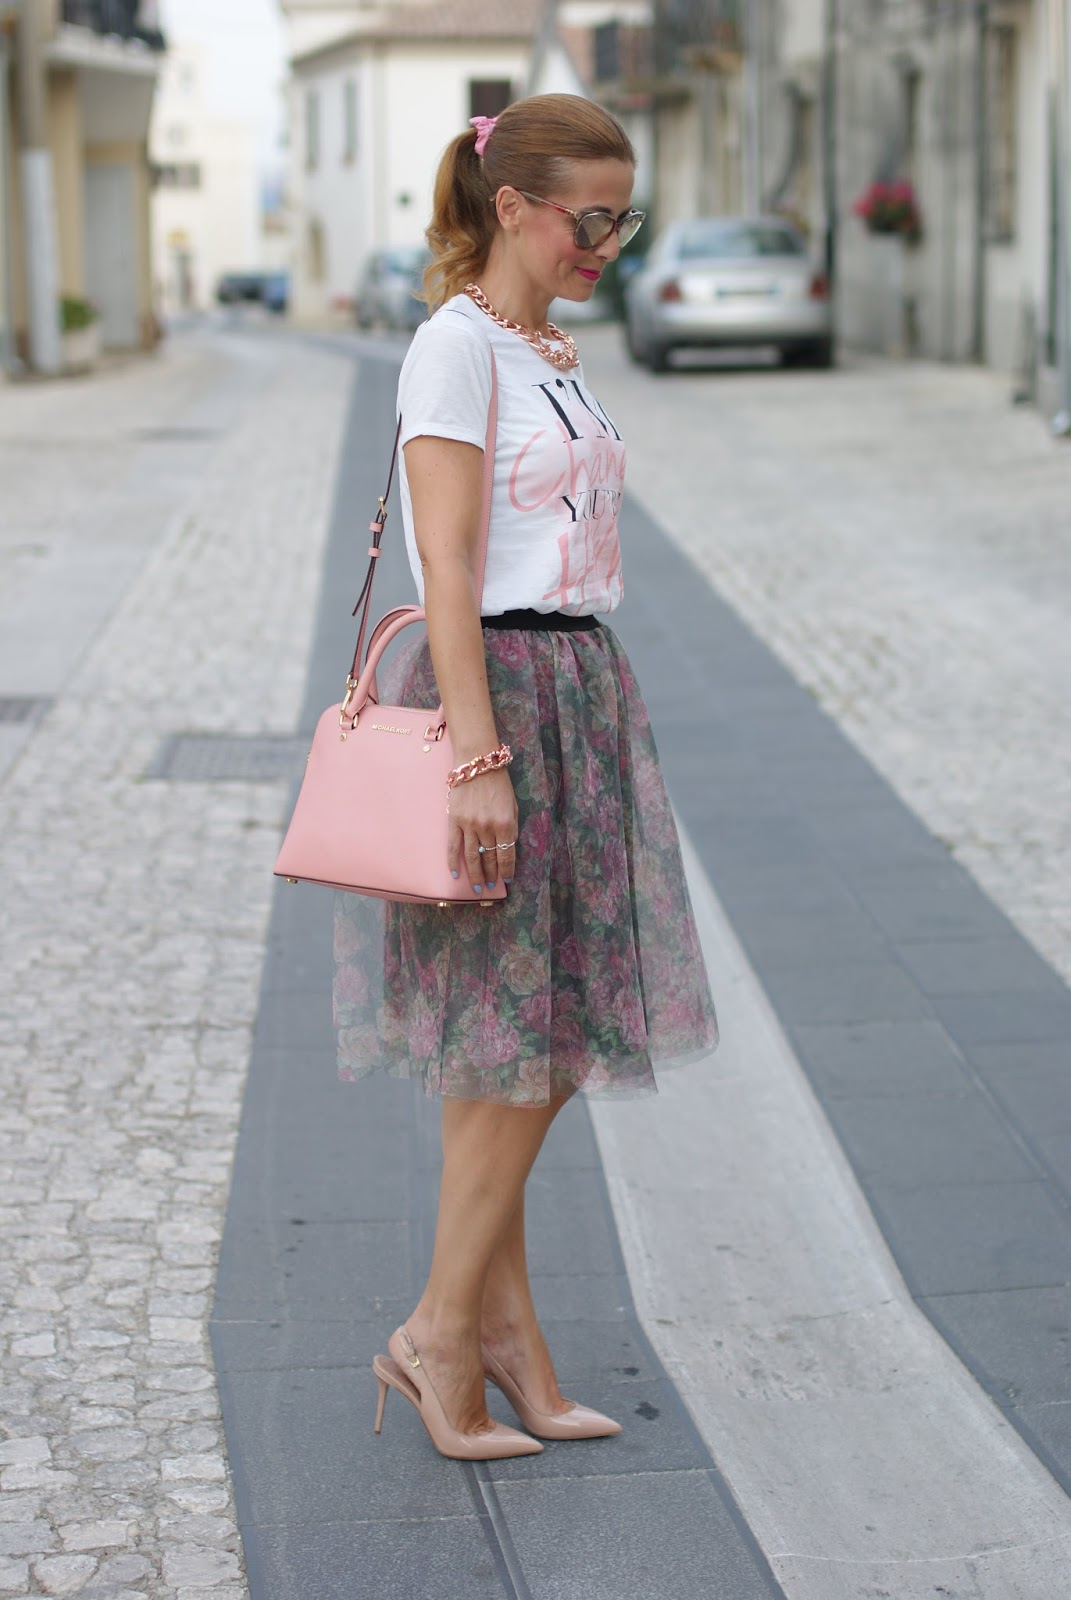 Walktrendy tulle skirt and Le Silla pumps for a pink romantic outfit on Fashion and Cookies fashion blog